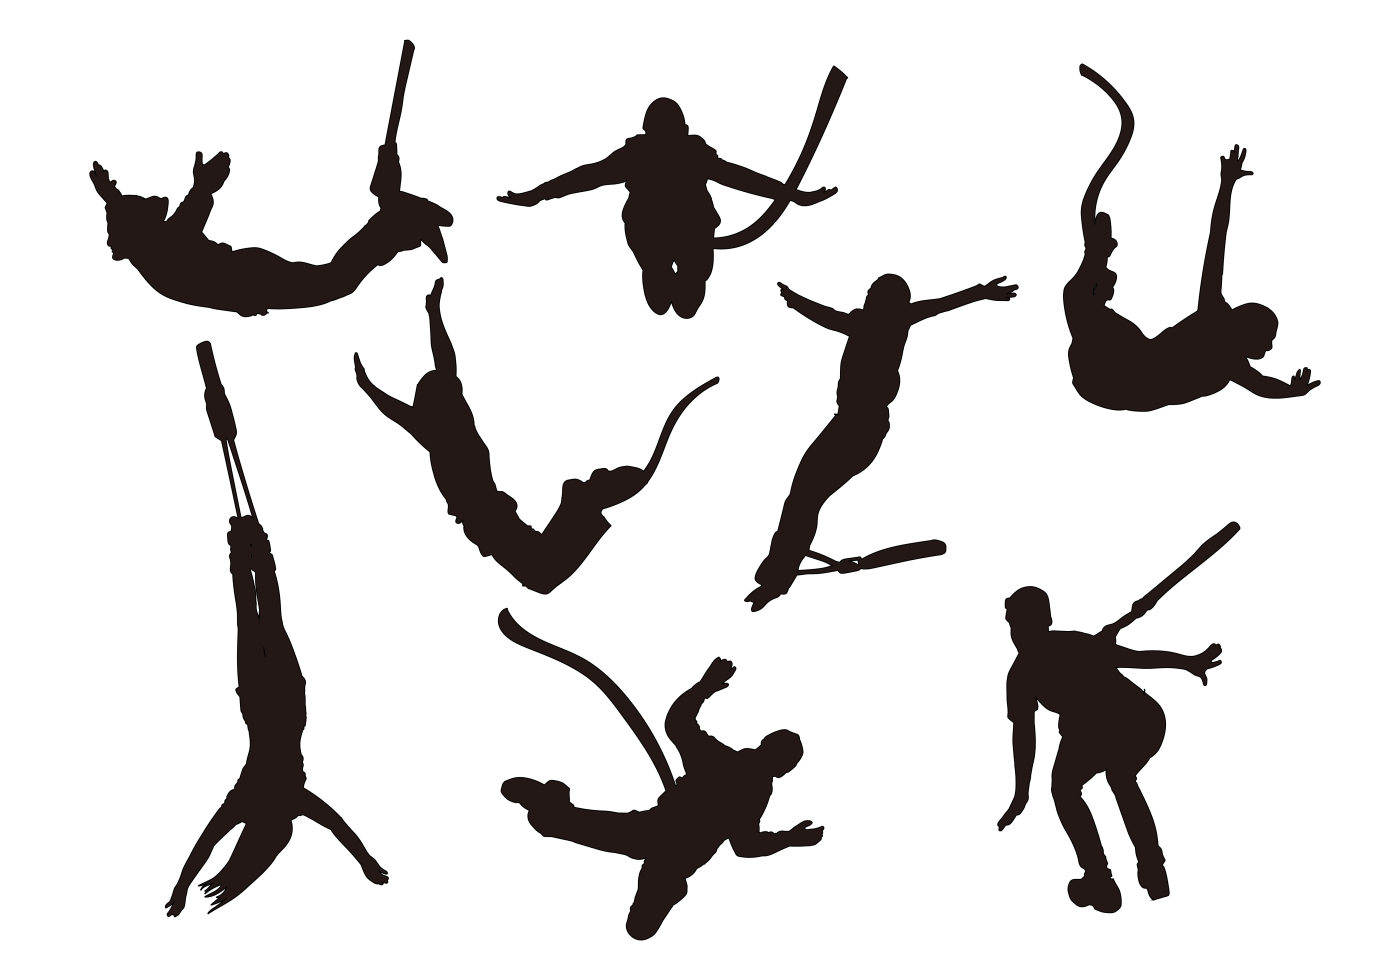 Bungee Jumping Silhouettes Vector